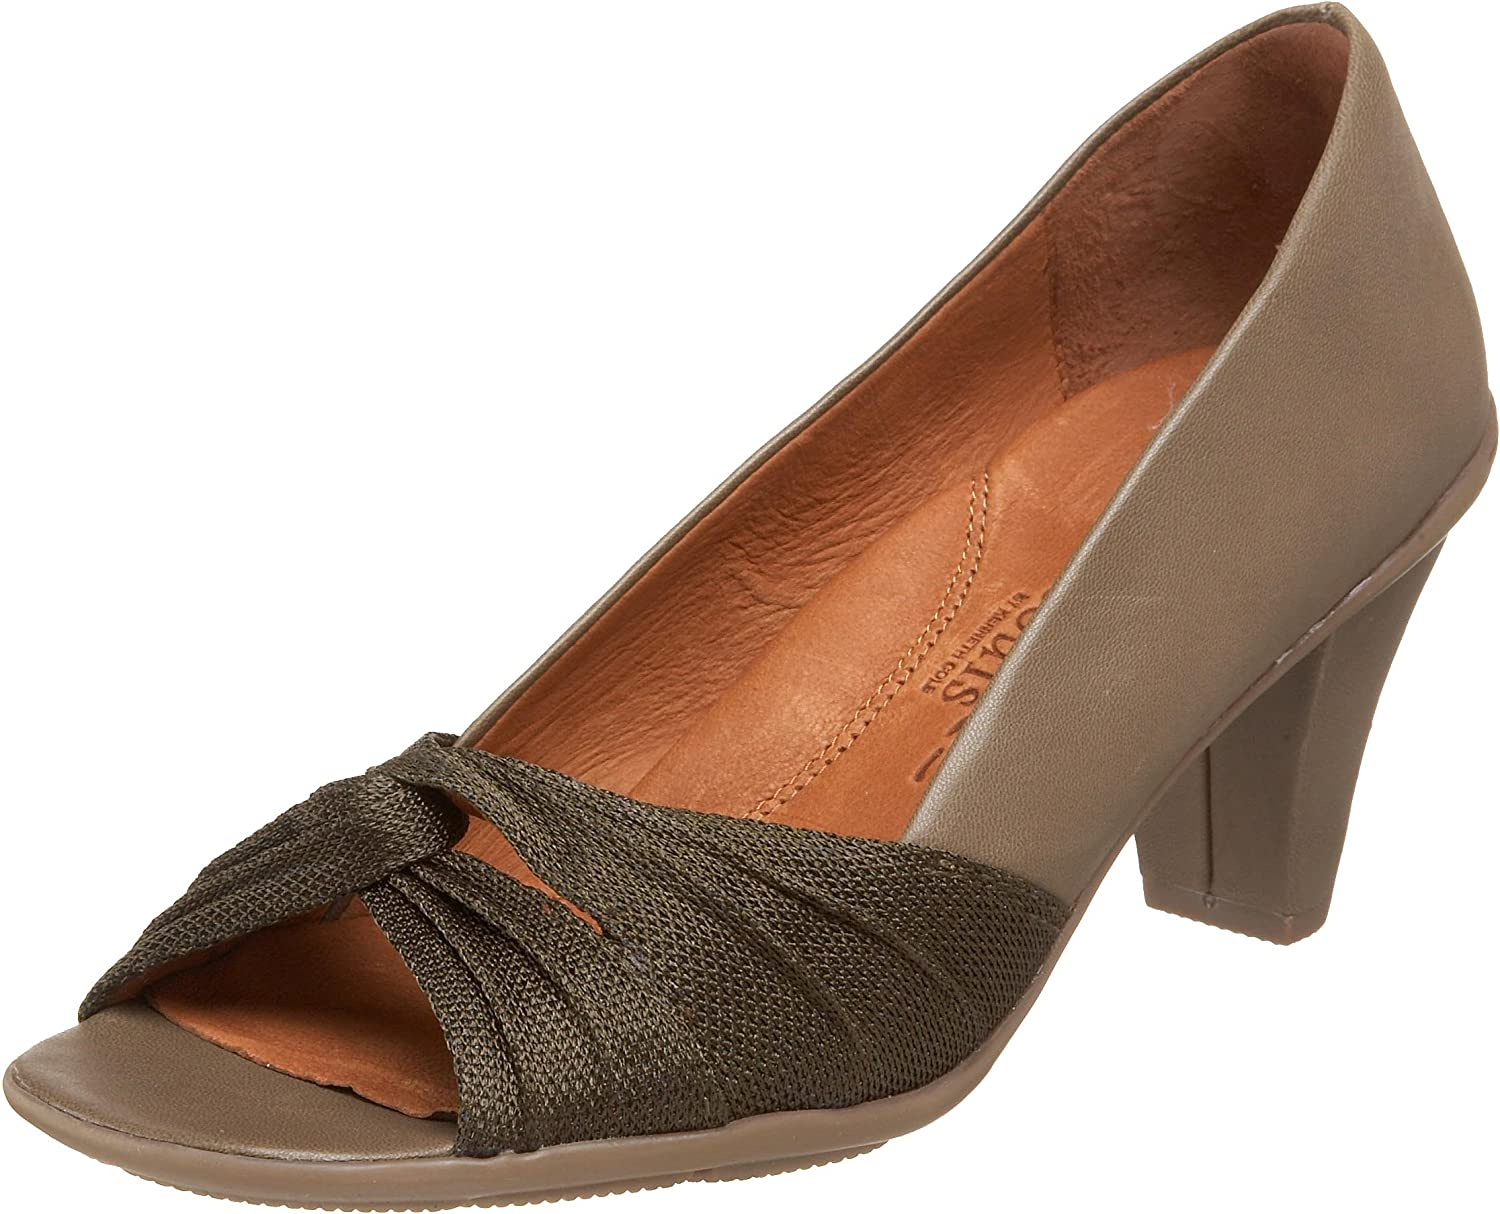 Gentle Souls by Kenneth Cole Pump Women's Limited OFFicial site time cheap sale P Osaka Open-Toe